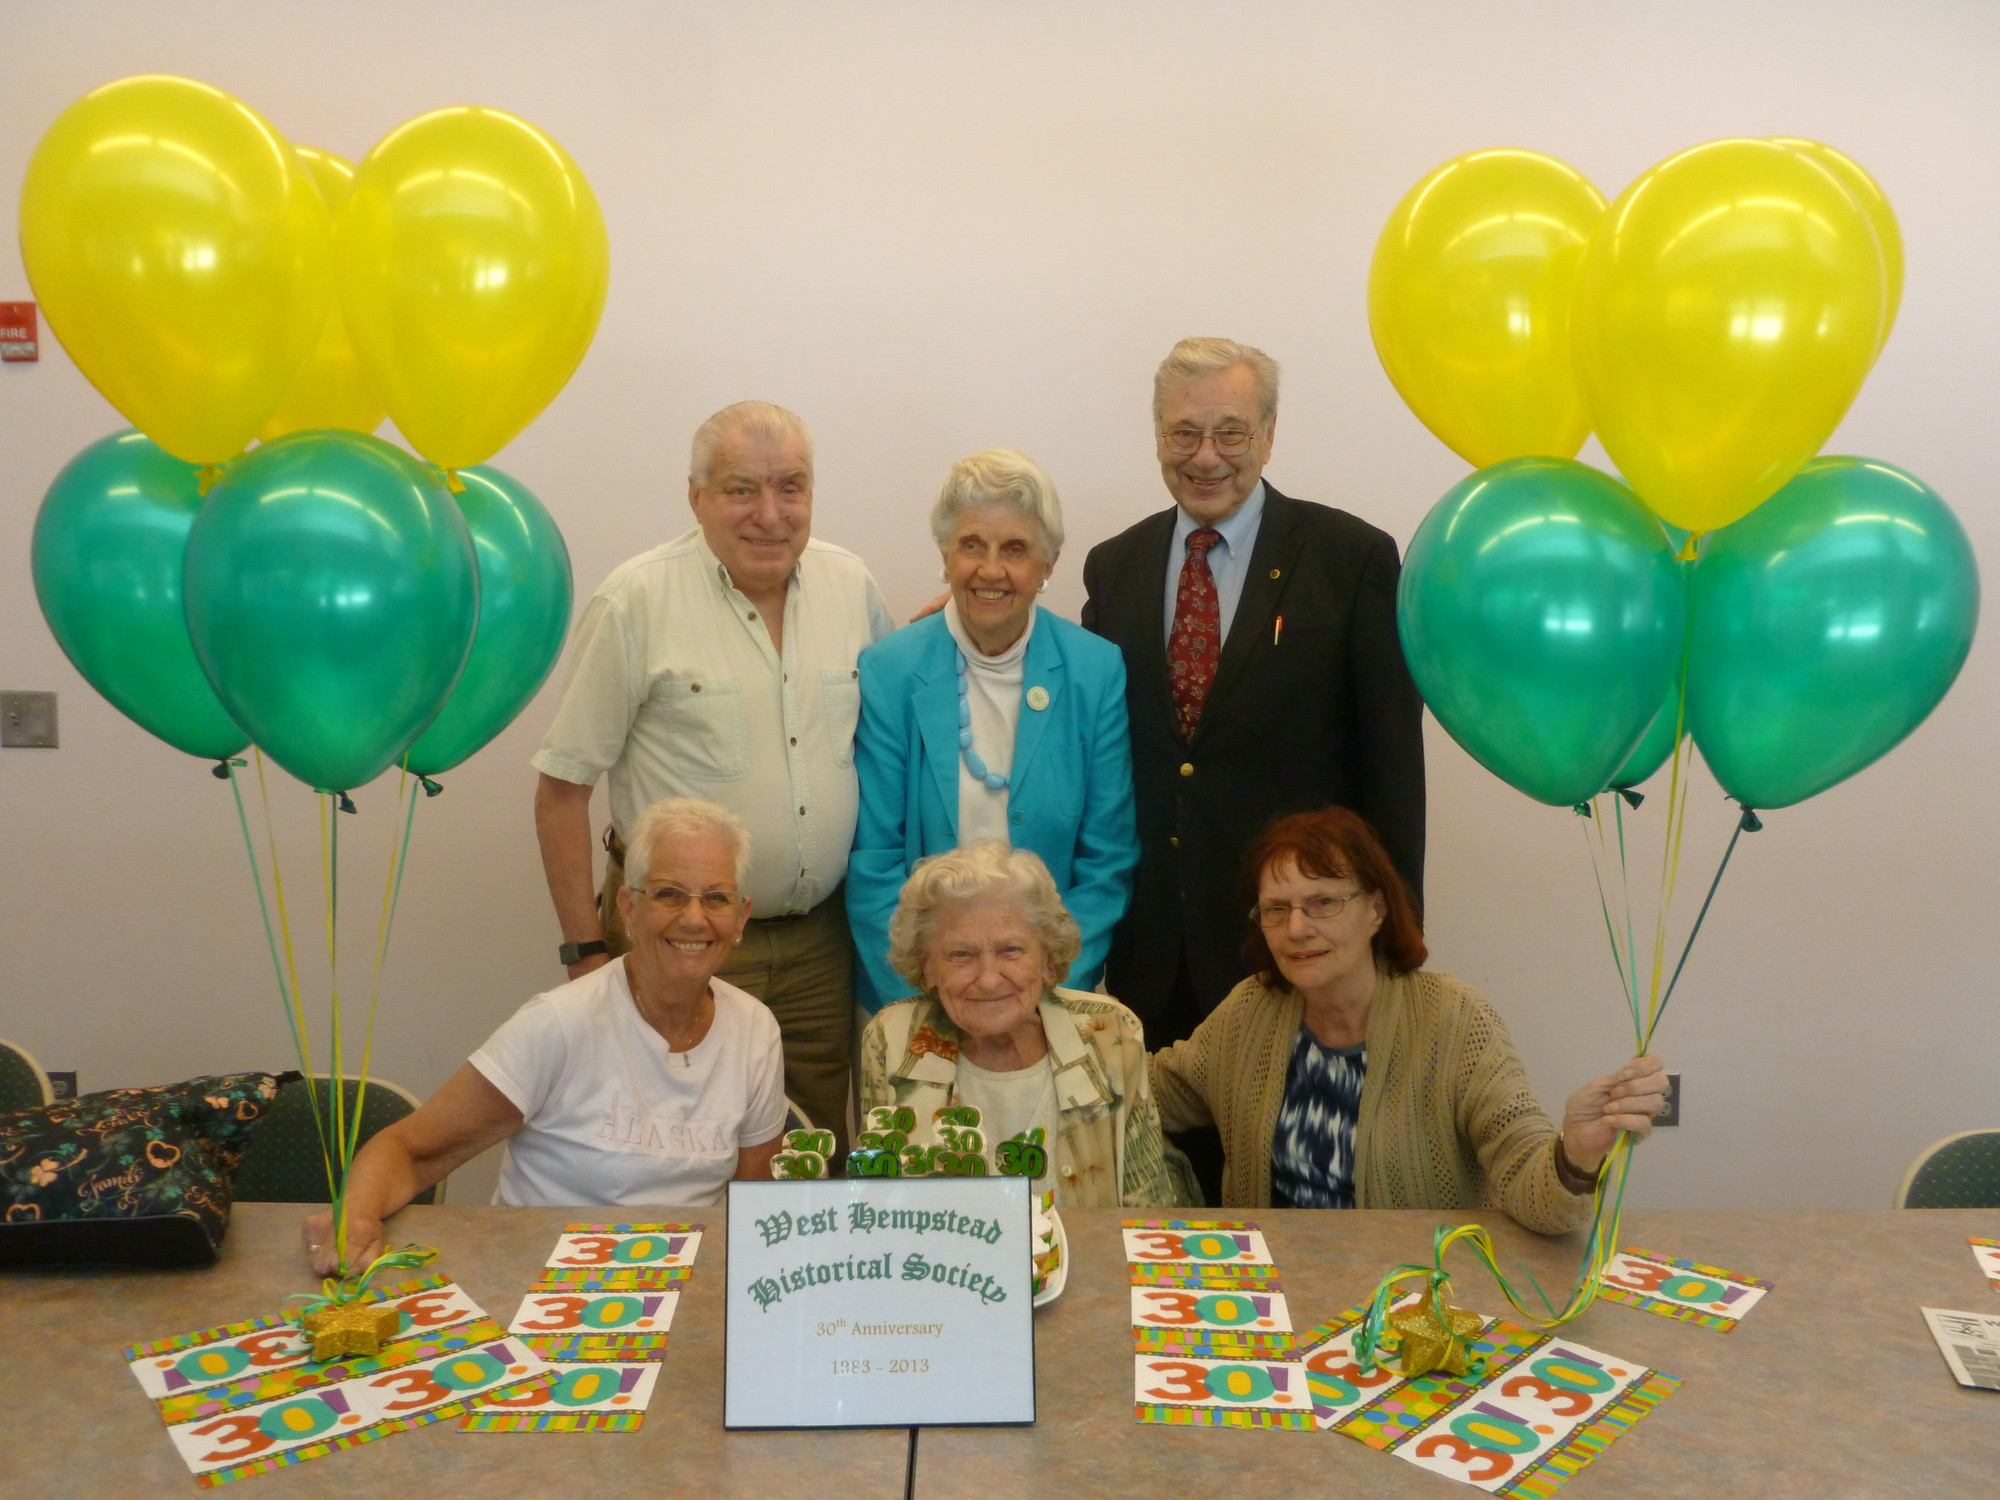 West Hempstead Historical Society members Bill Rilling, back left, Helen Duryea, President John Shaud, and Linda Brohm, front left, Justine Niedz and Joan Klopfer celebrate 31 years of educating residents about their town's rich history.